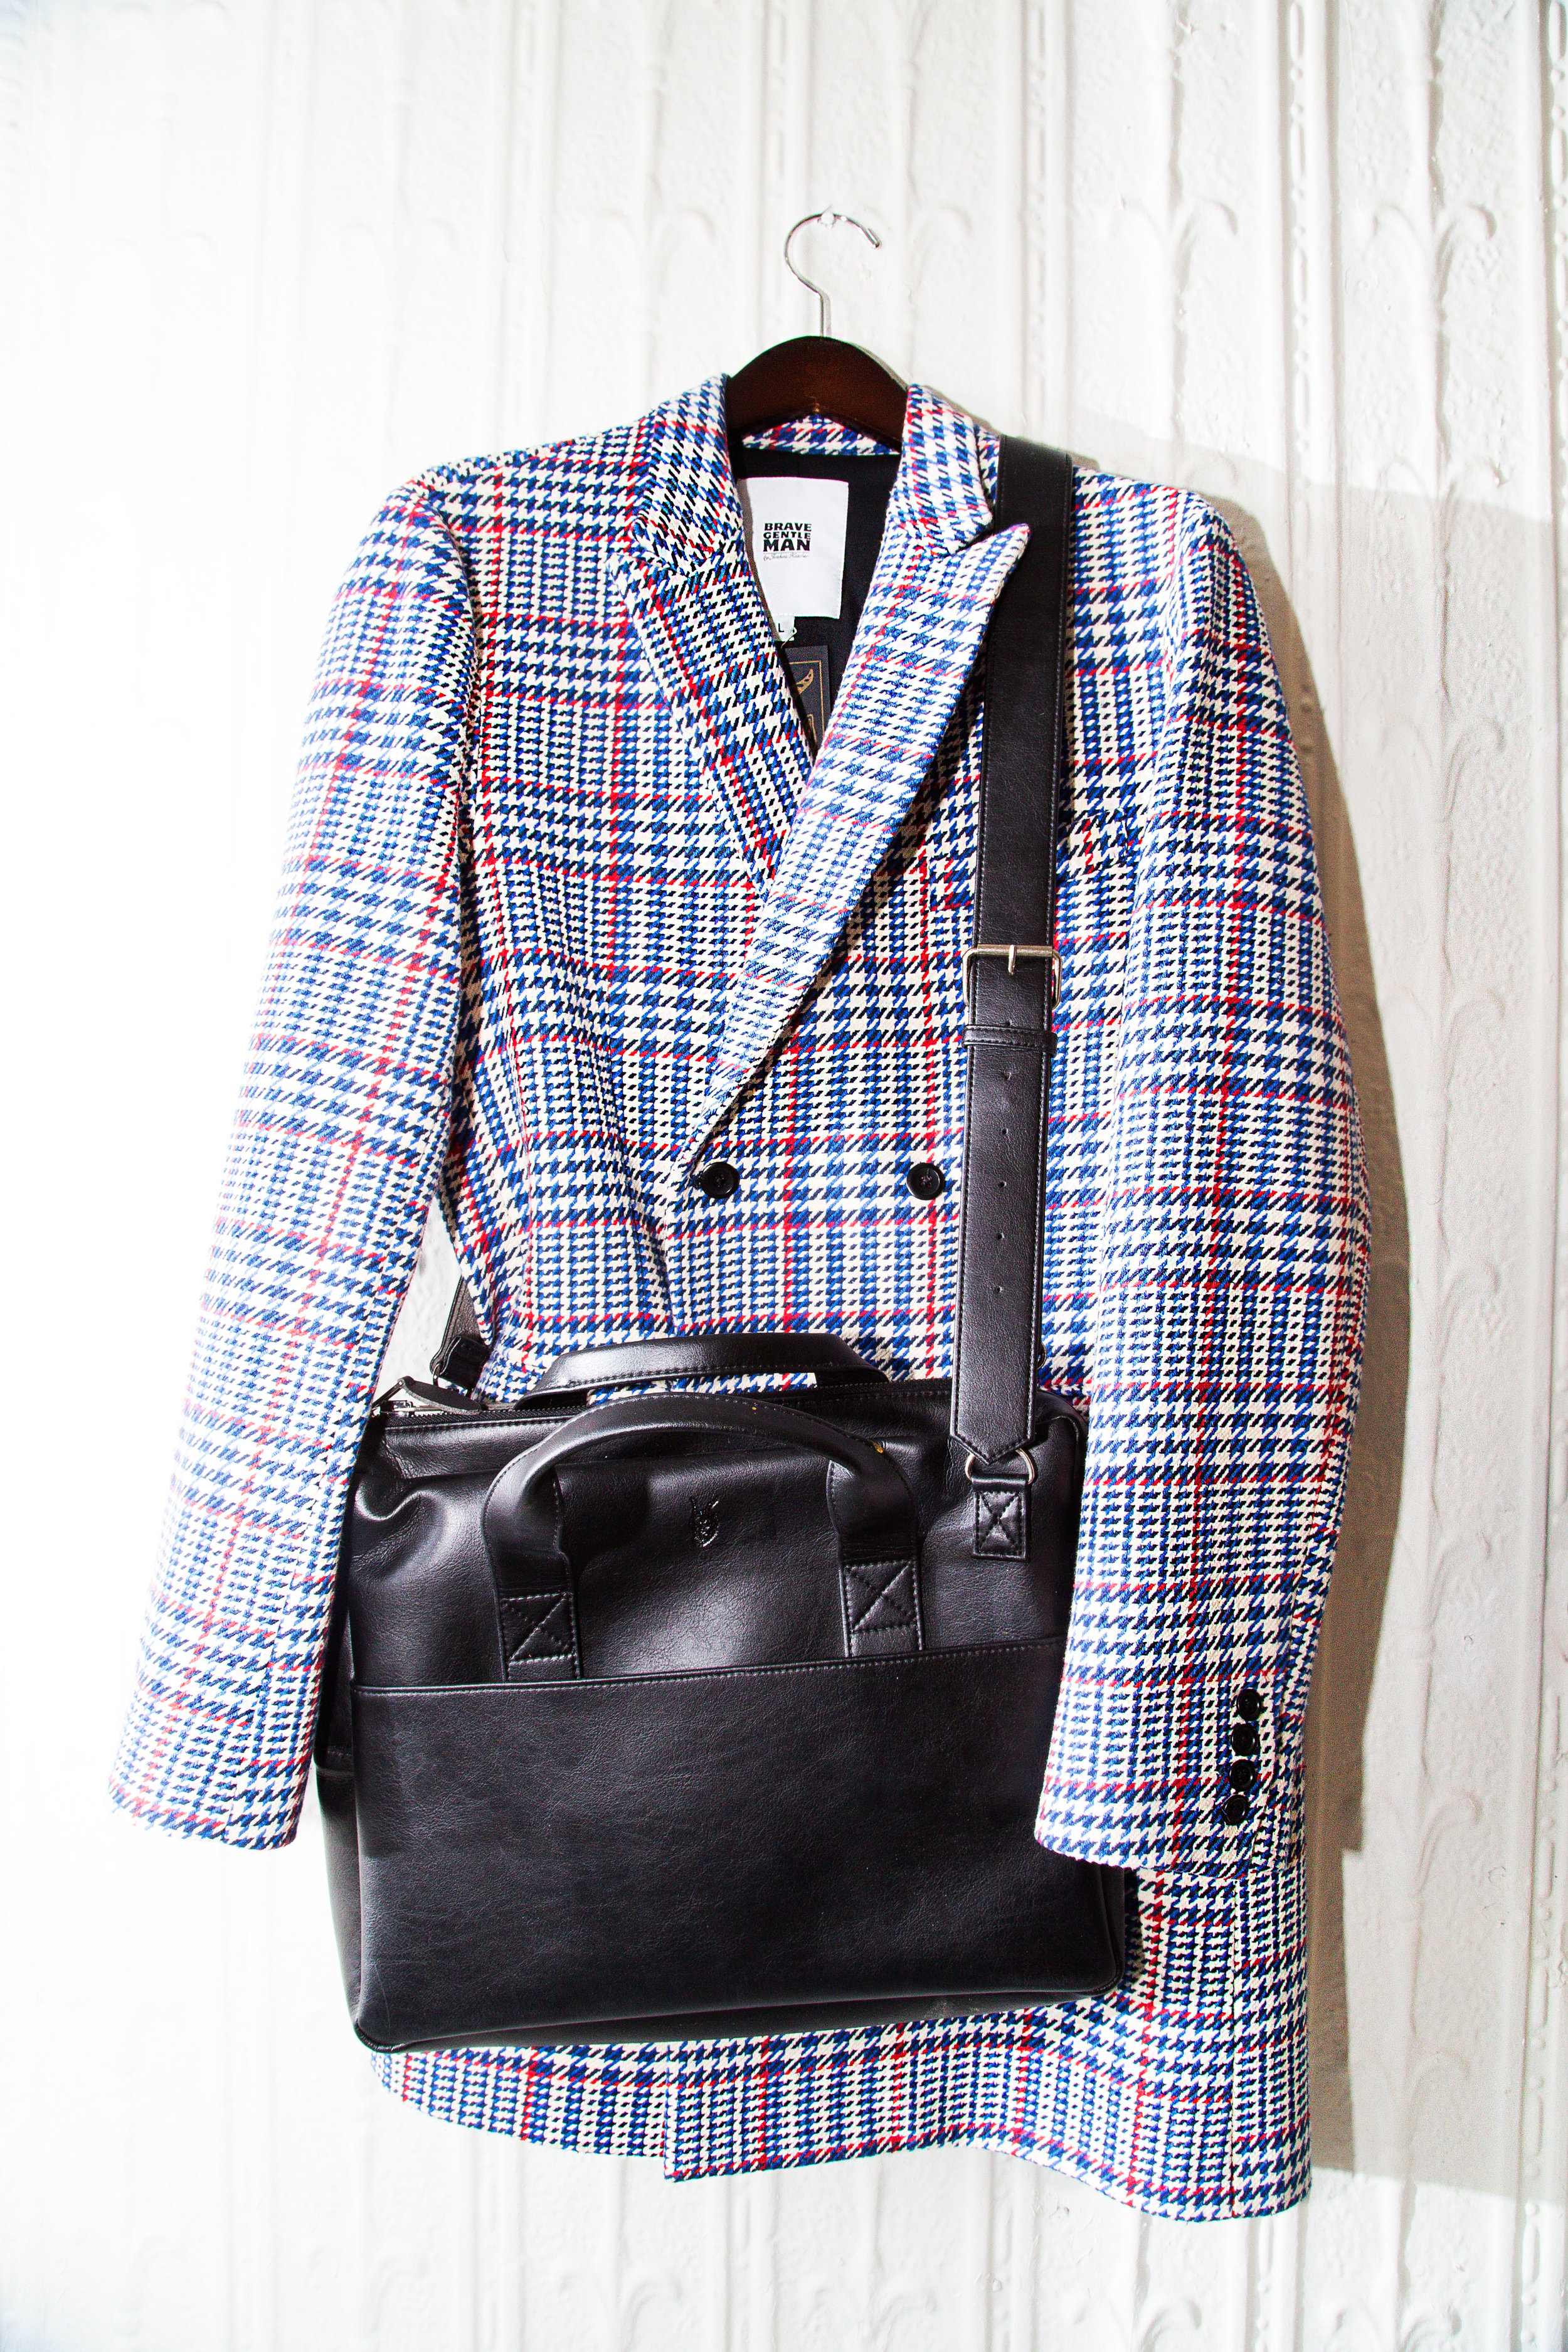 Double-breasted Overcoat in multi-color Houndstooth.